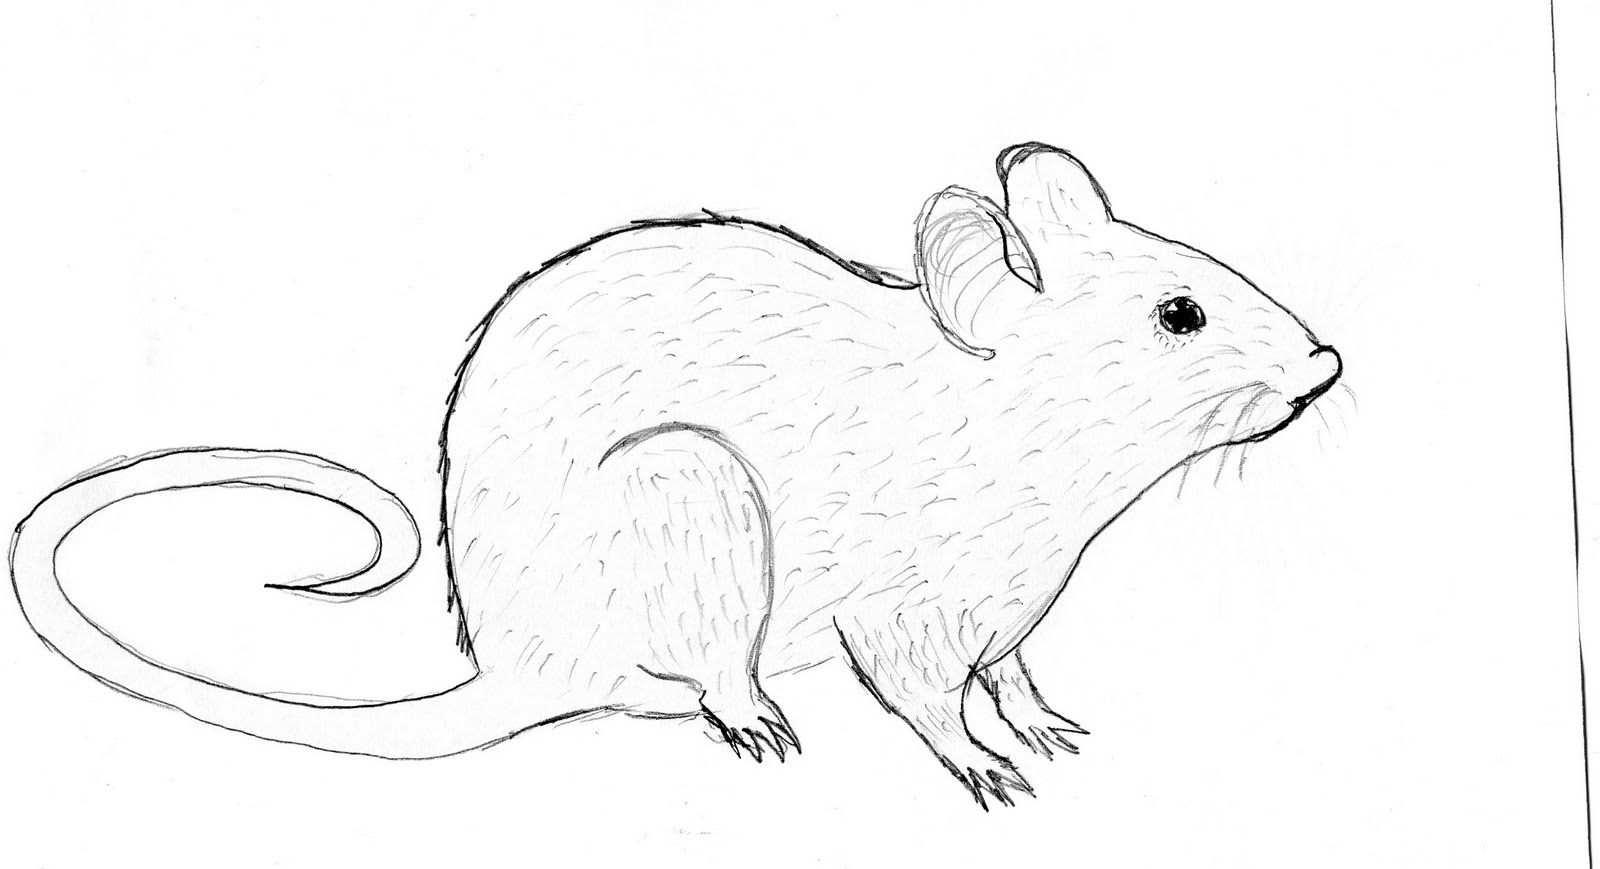 Drawn rat Sustainability: 2010 October Rat drawing